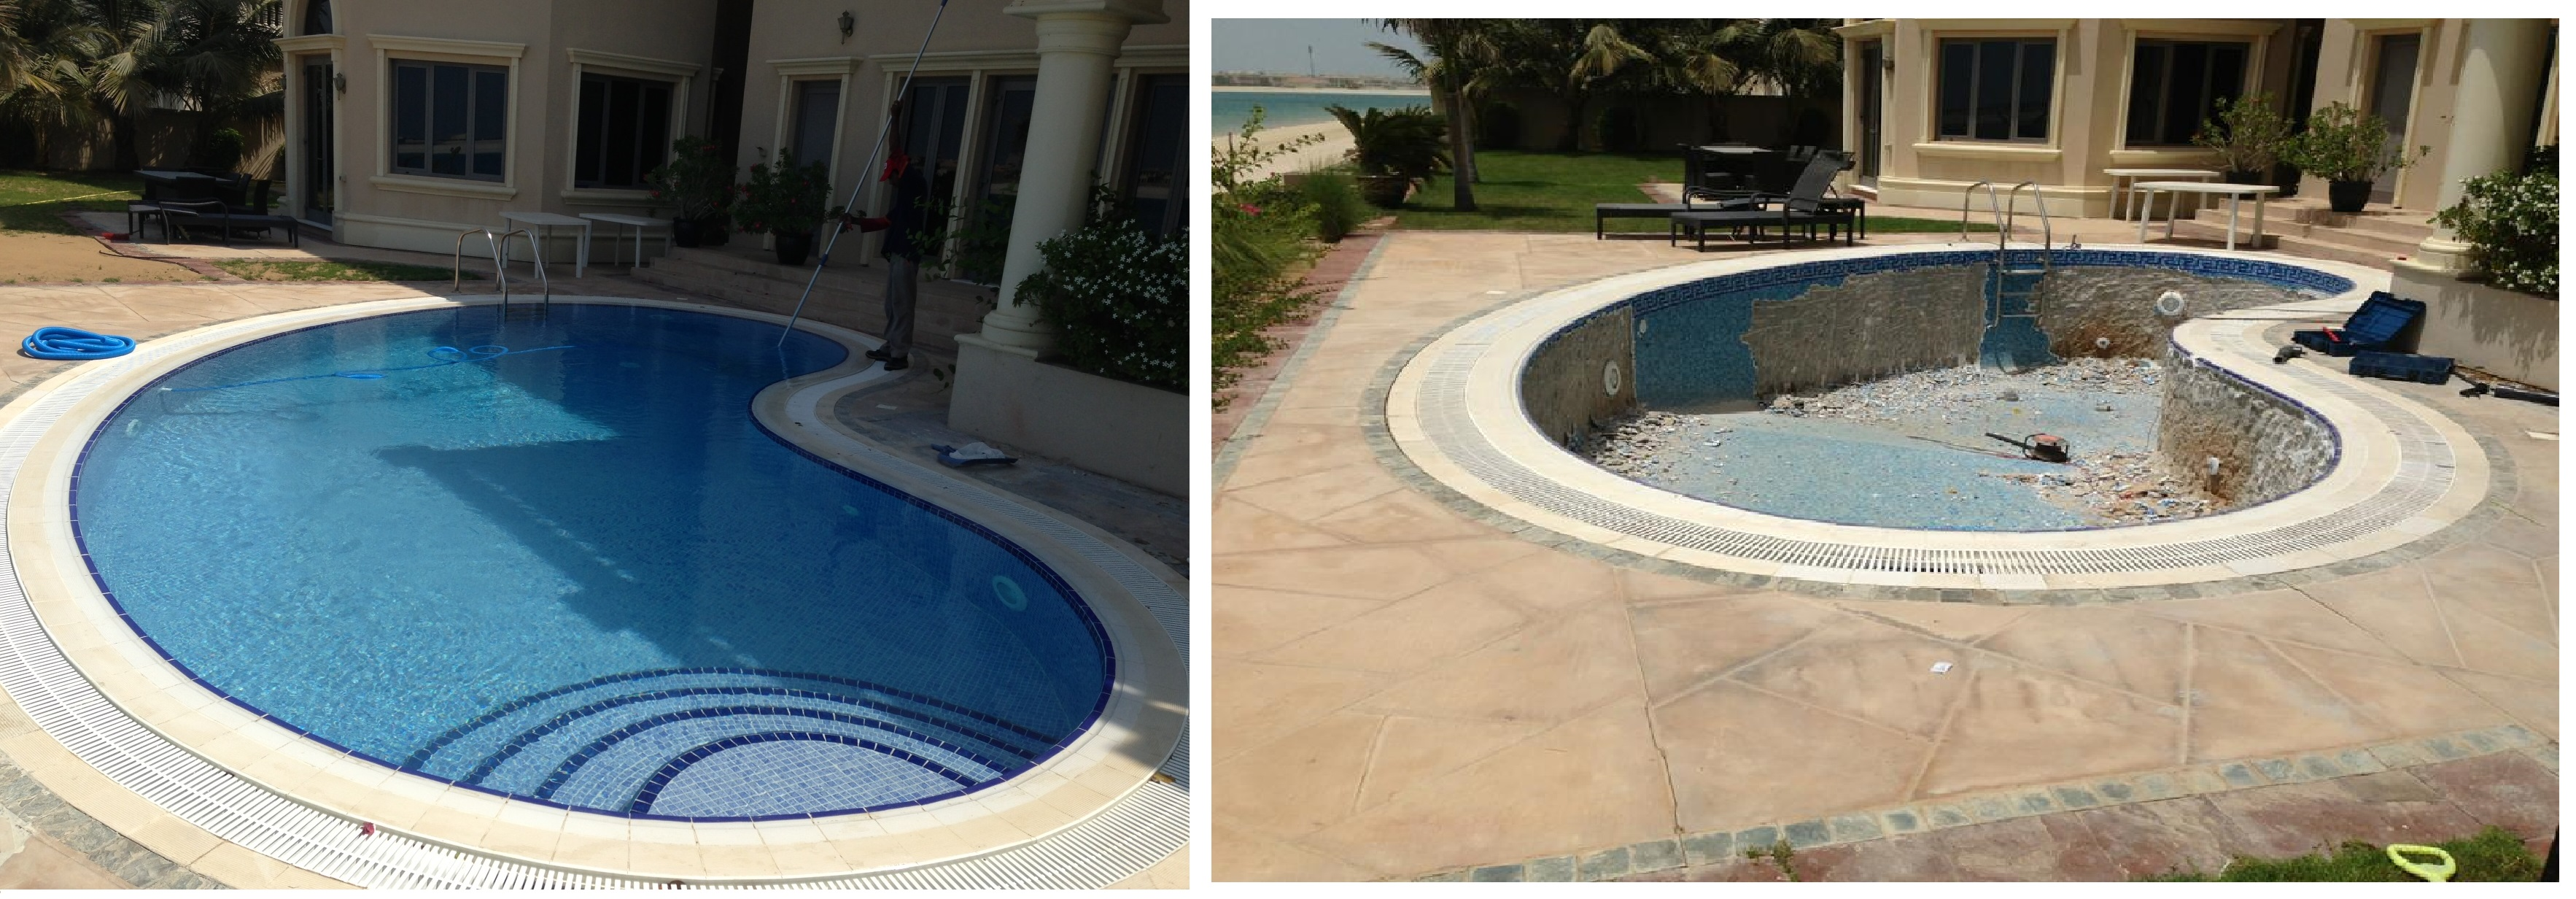 Swimming pool cleaning maintenance dubai for Swimming pool suppliers in dubai